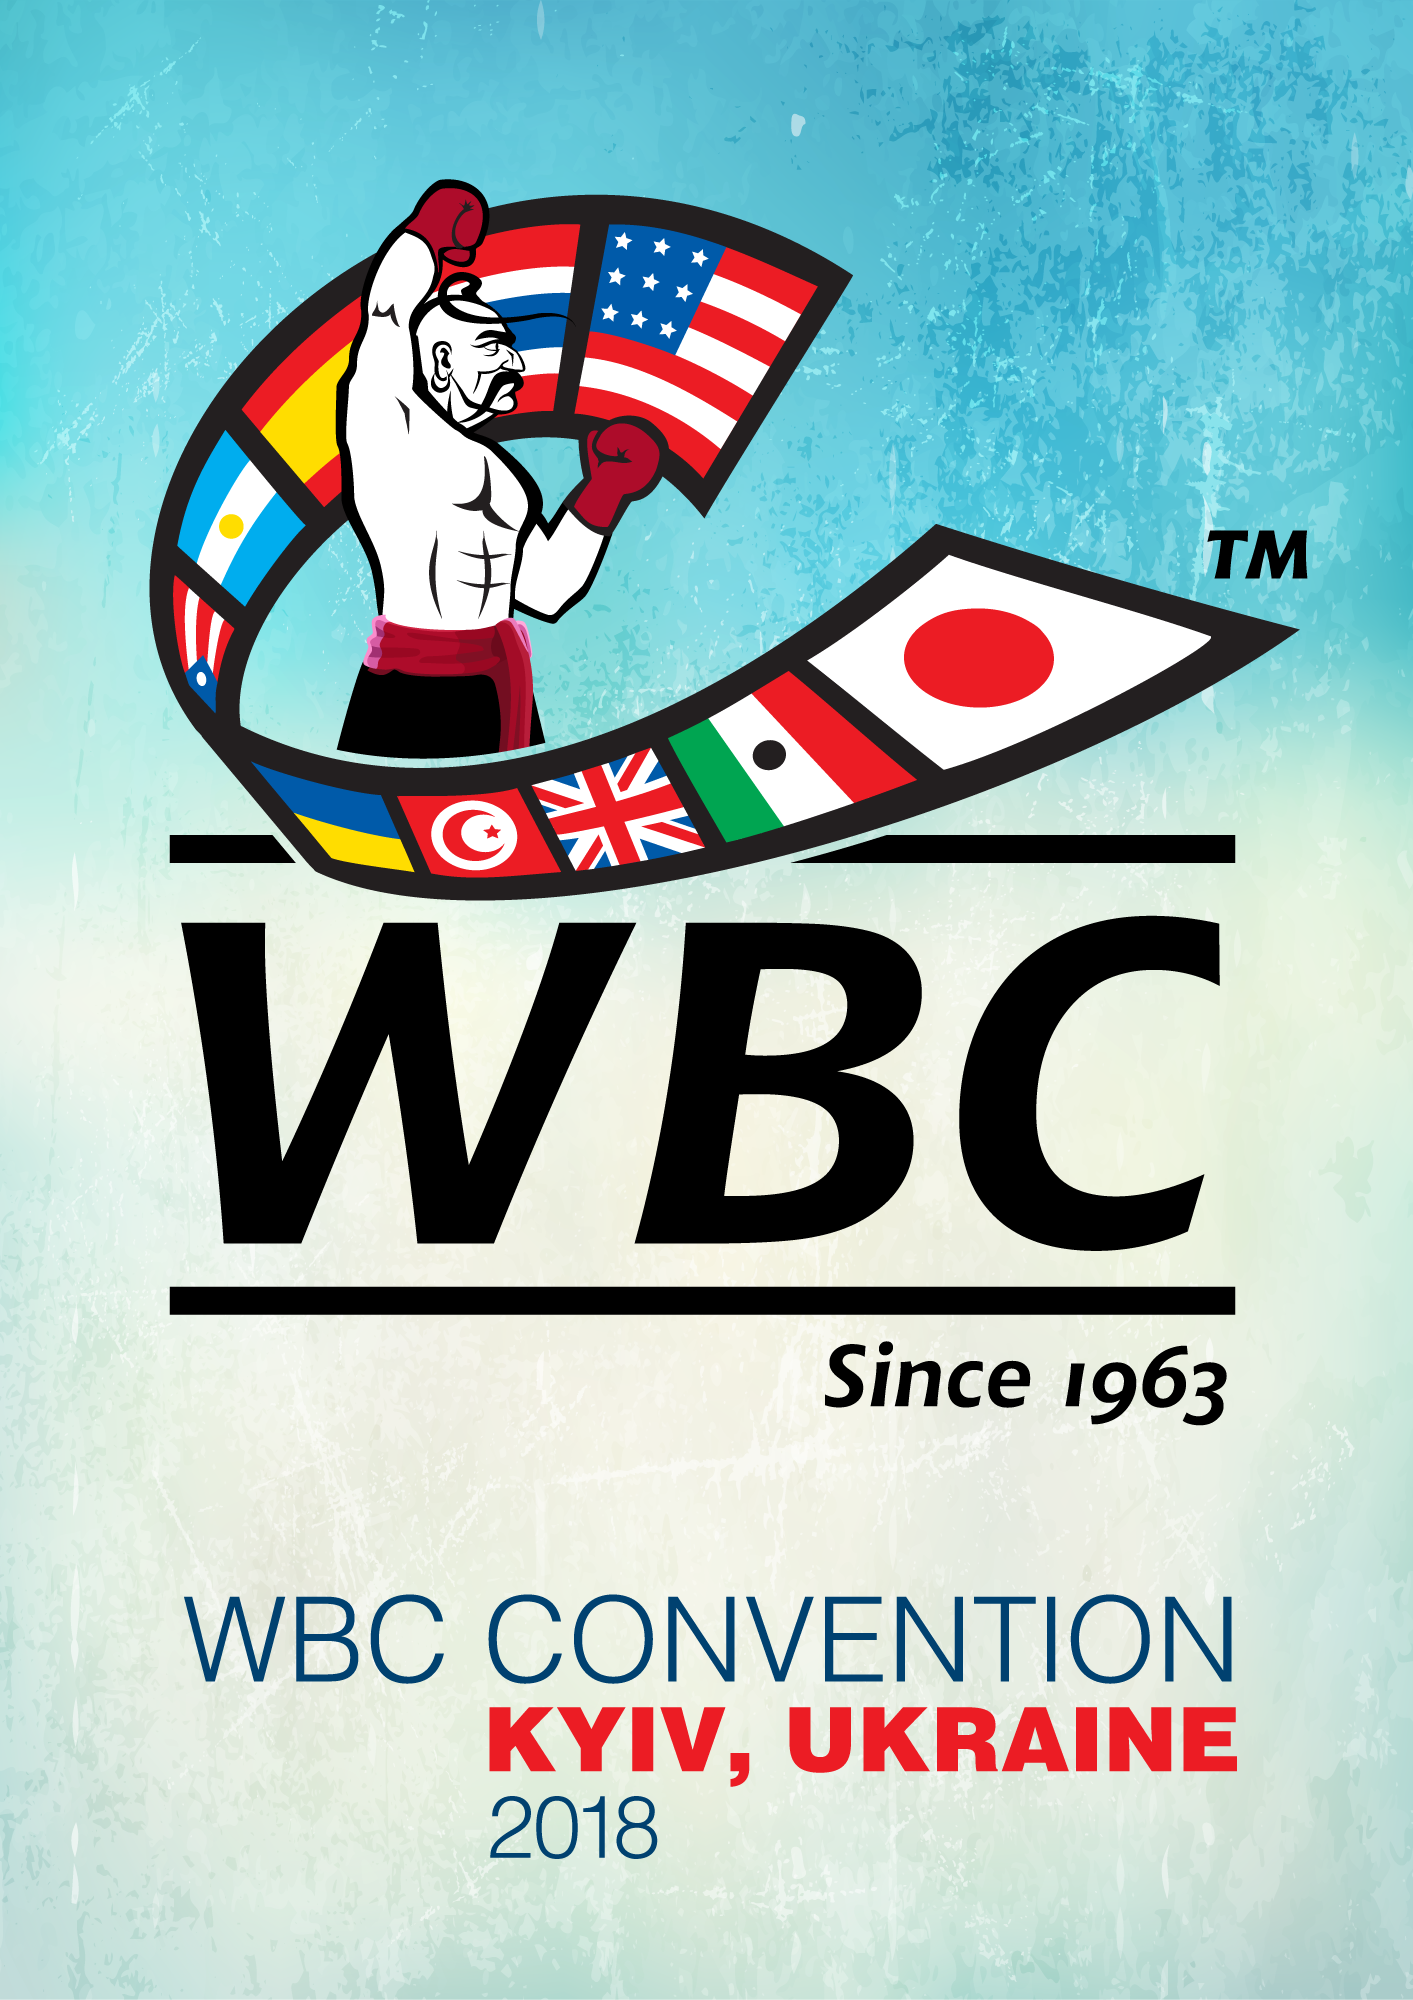 wbc-kyiv-ukraine-convention